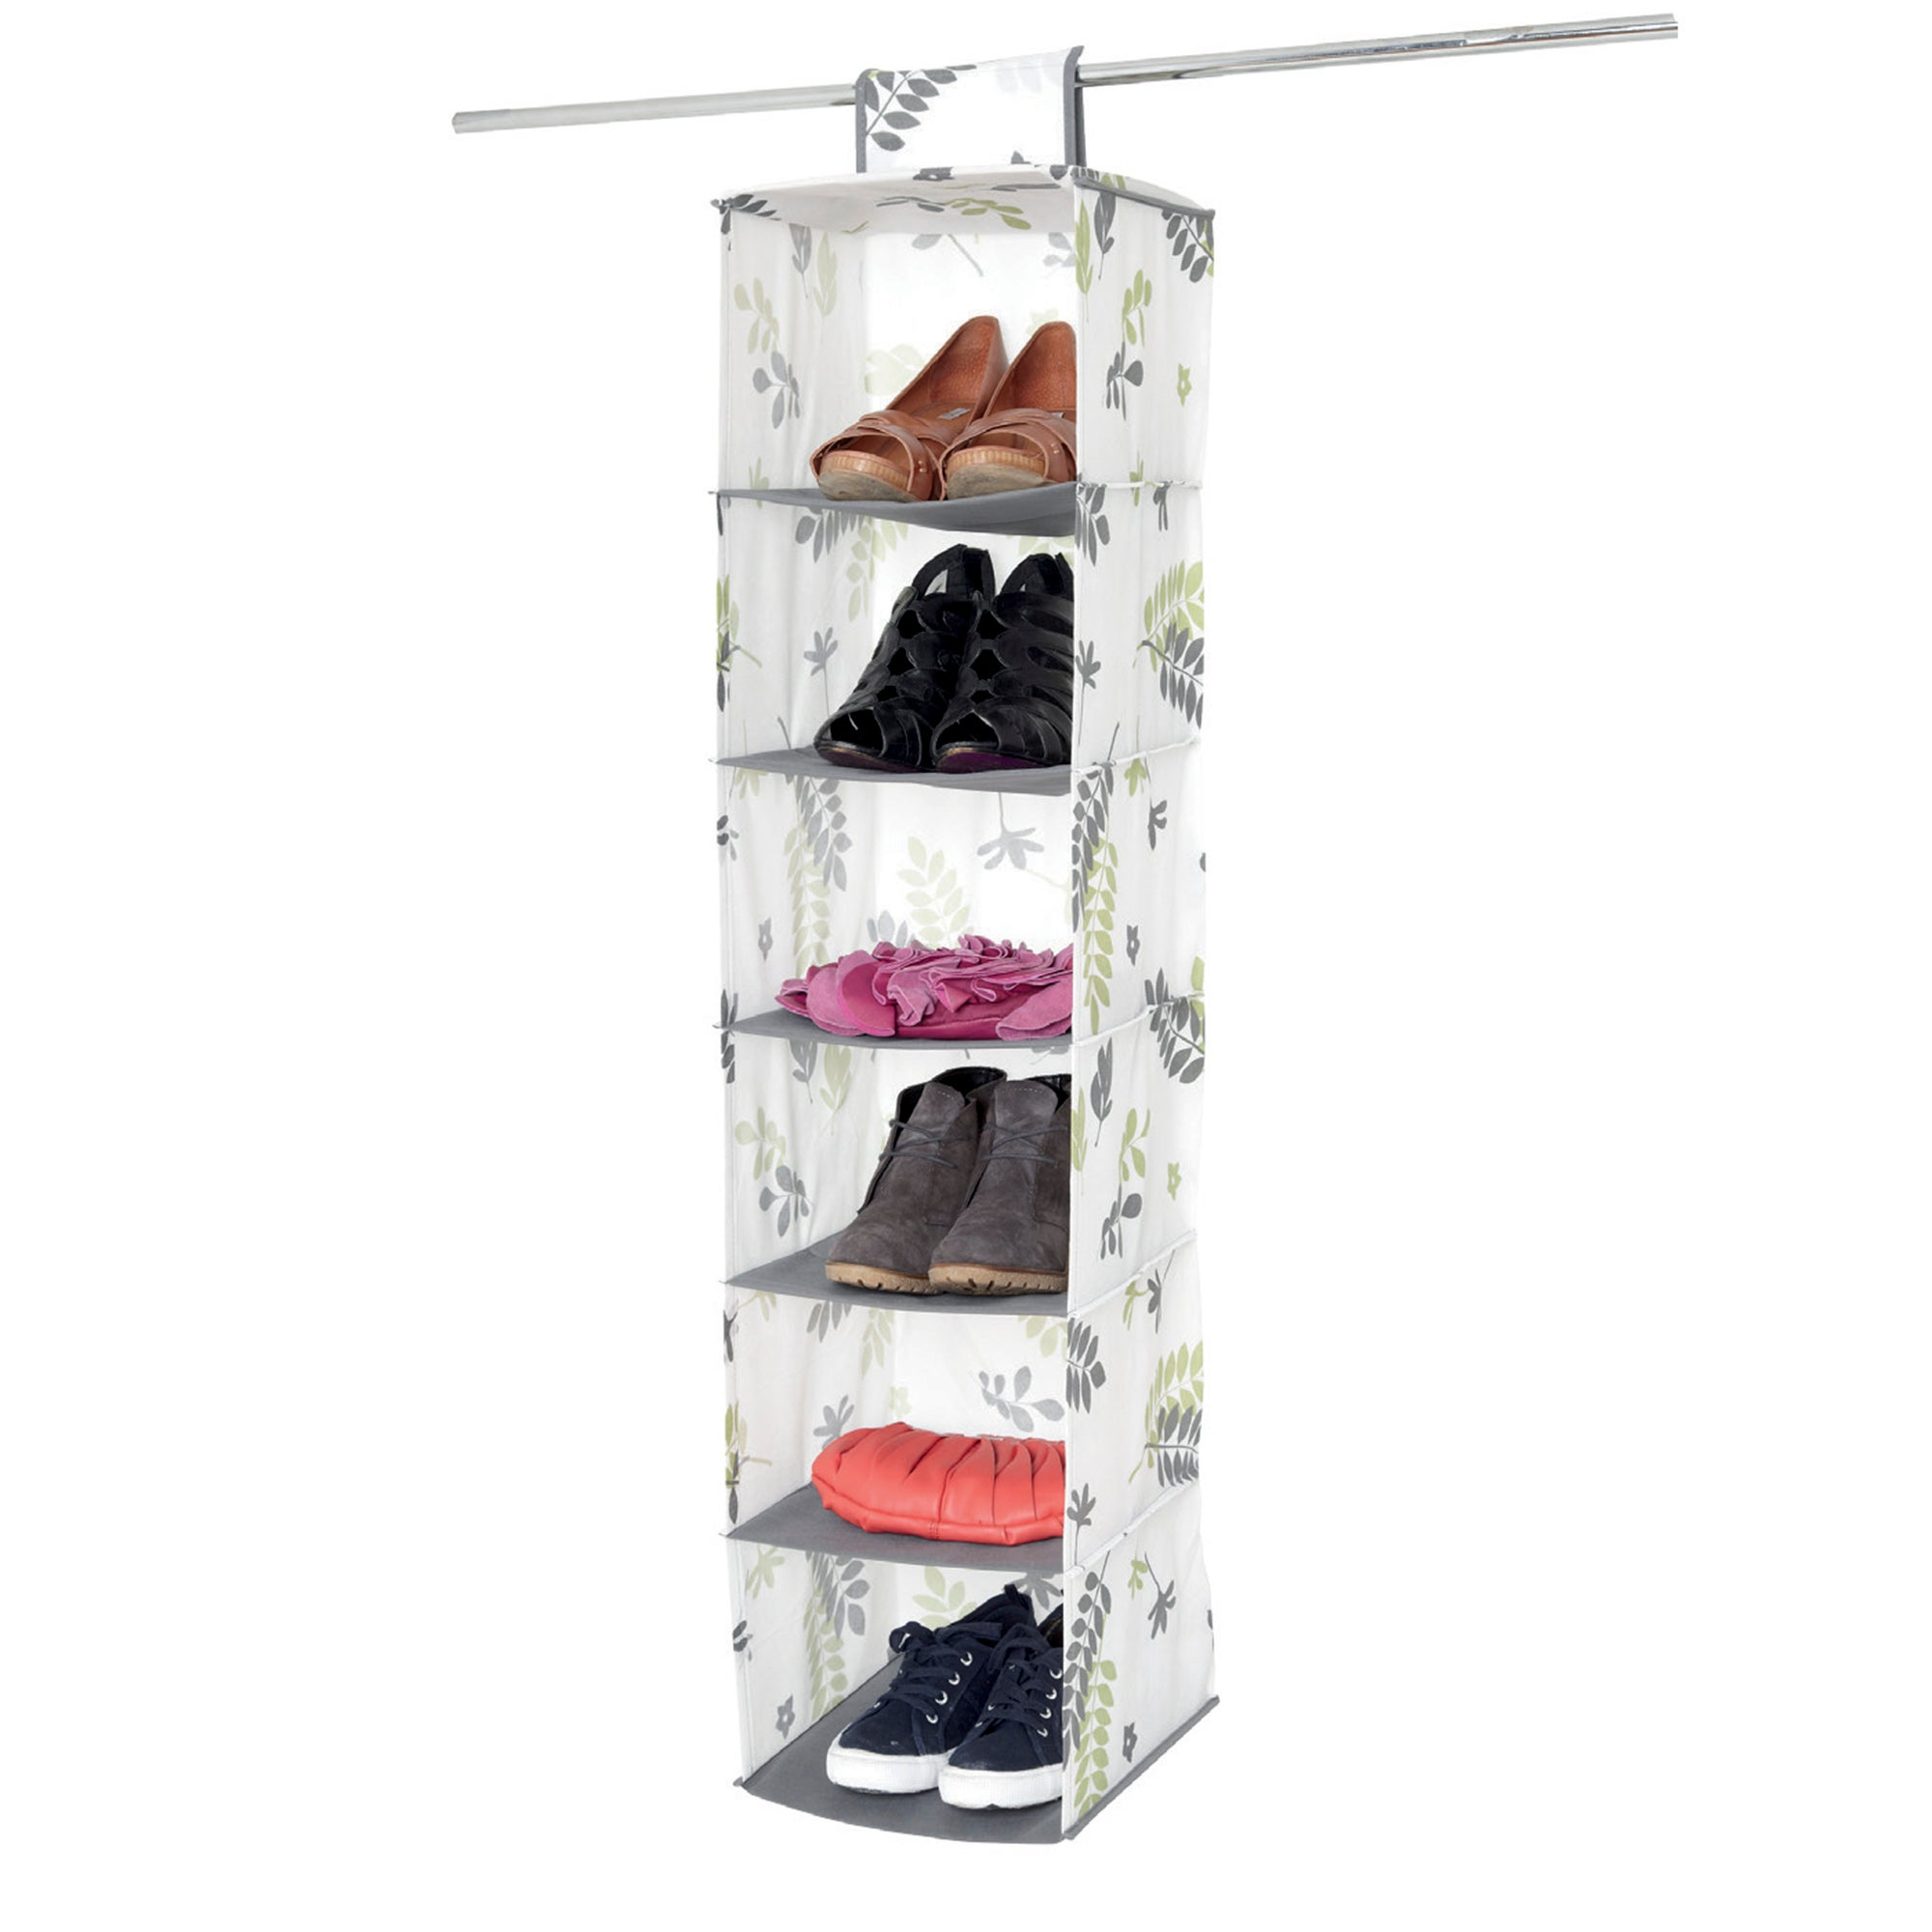 Eden 6 Compartment Hanging Organiser